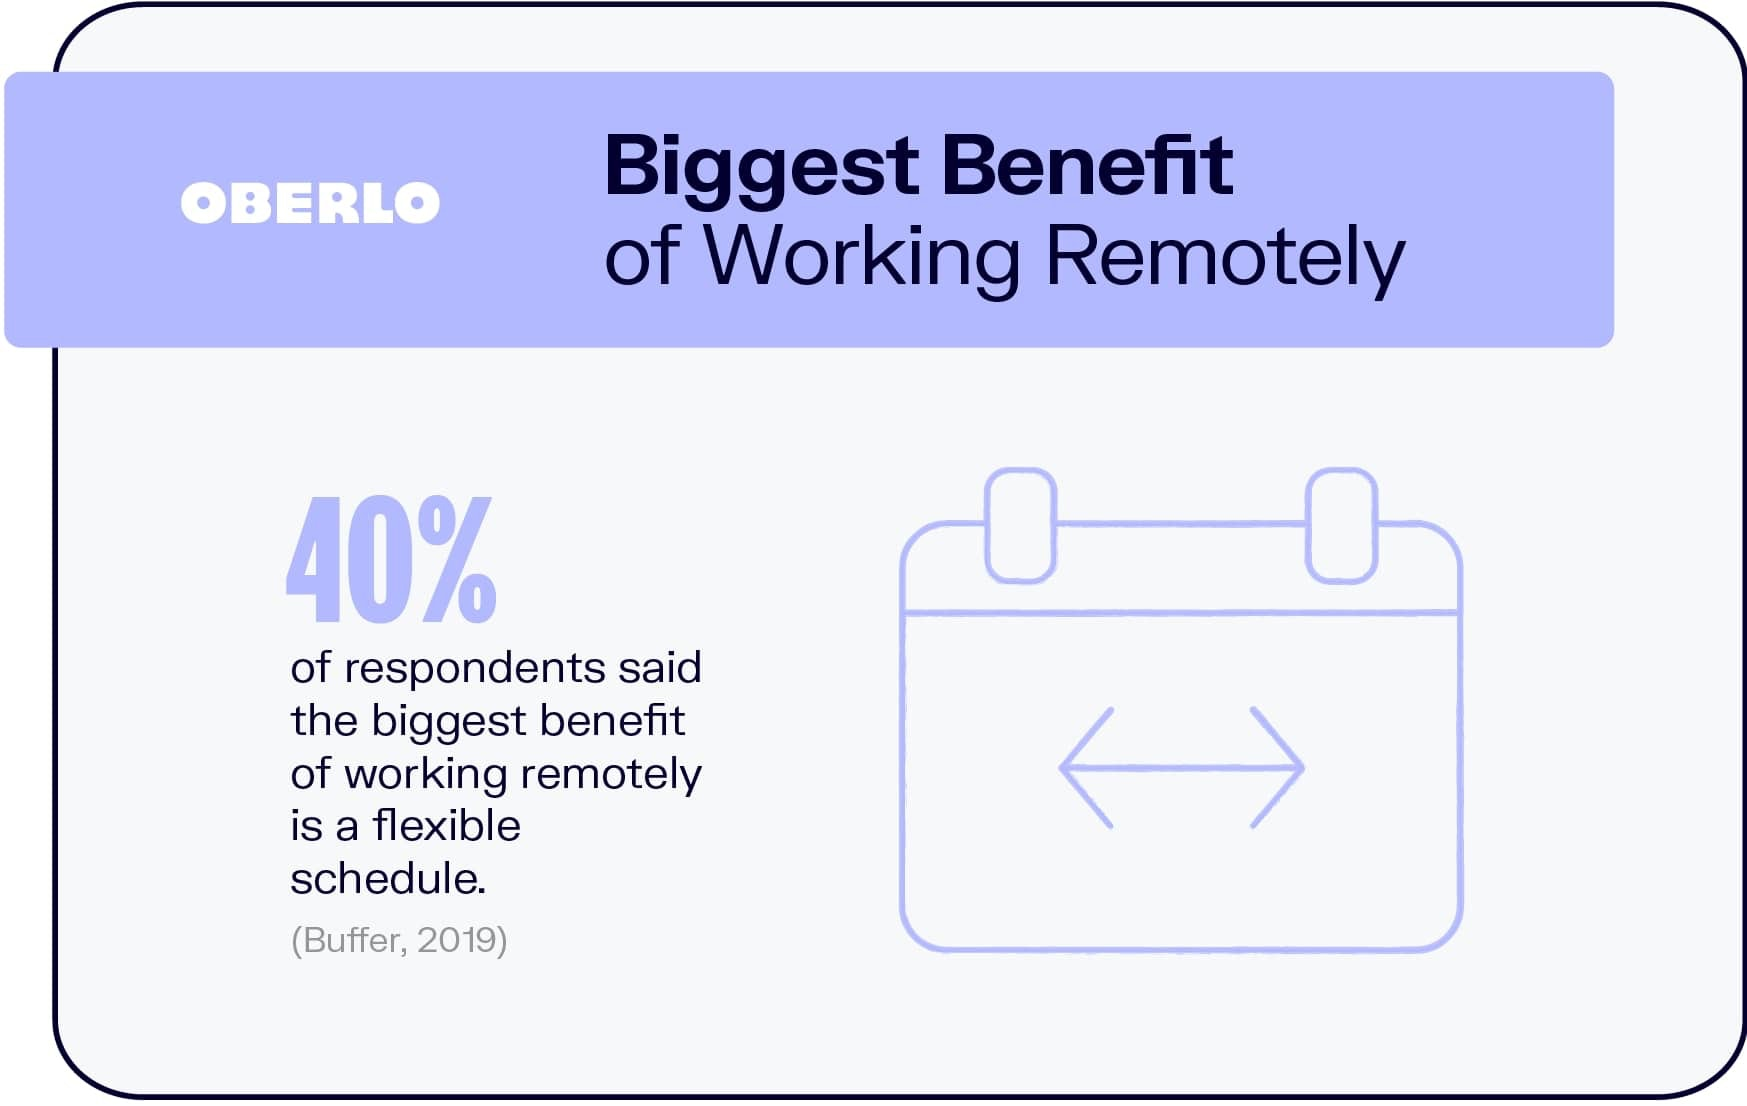 Biggest Benefit of Working Remotely